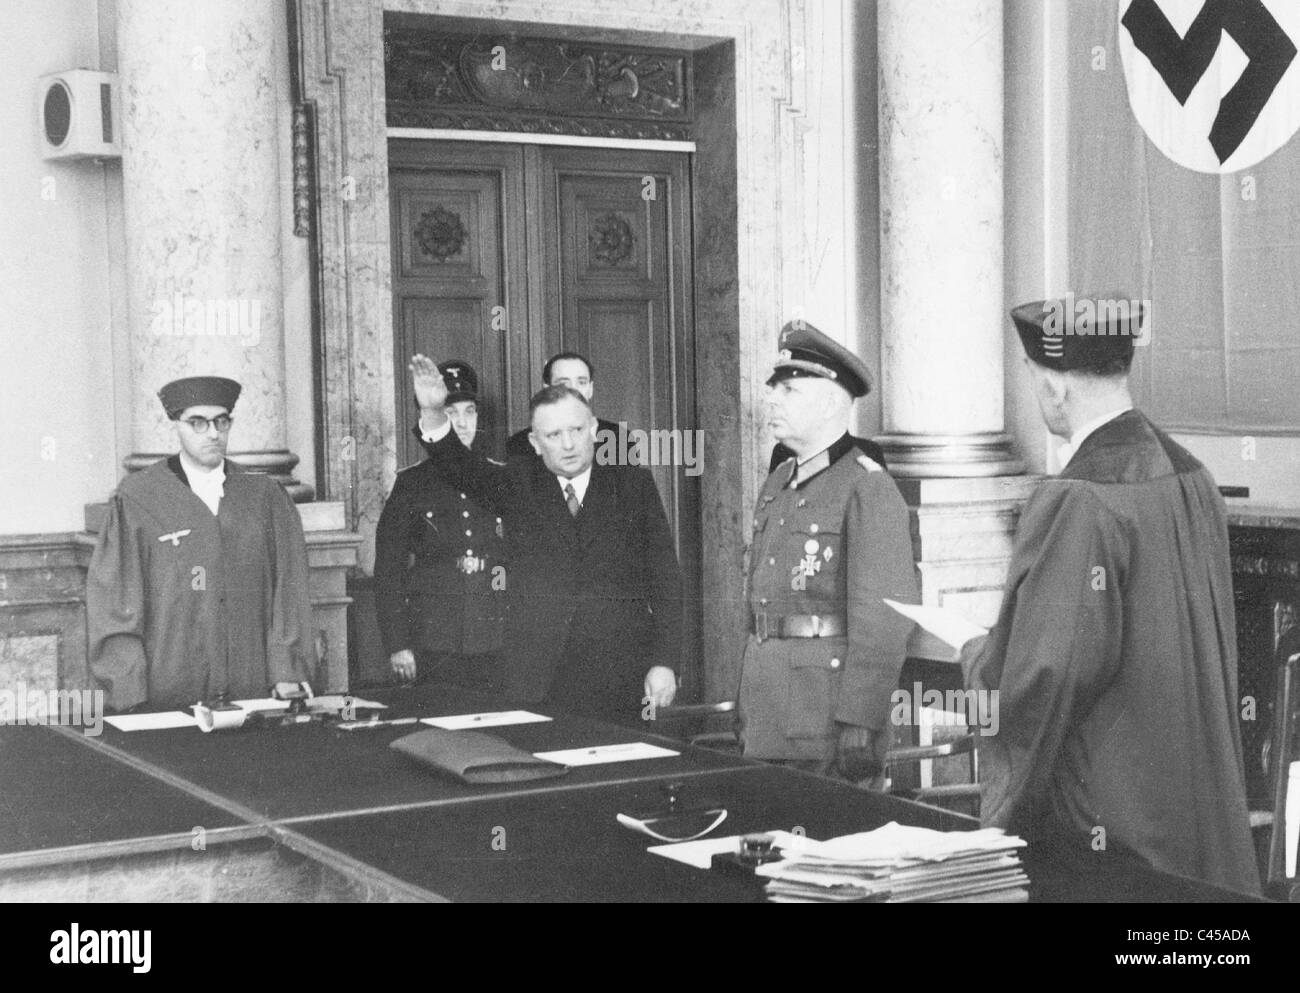 Trial at the People's Court, 1944 Stock Photo